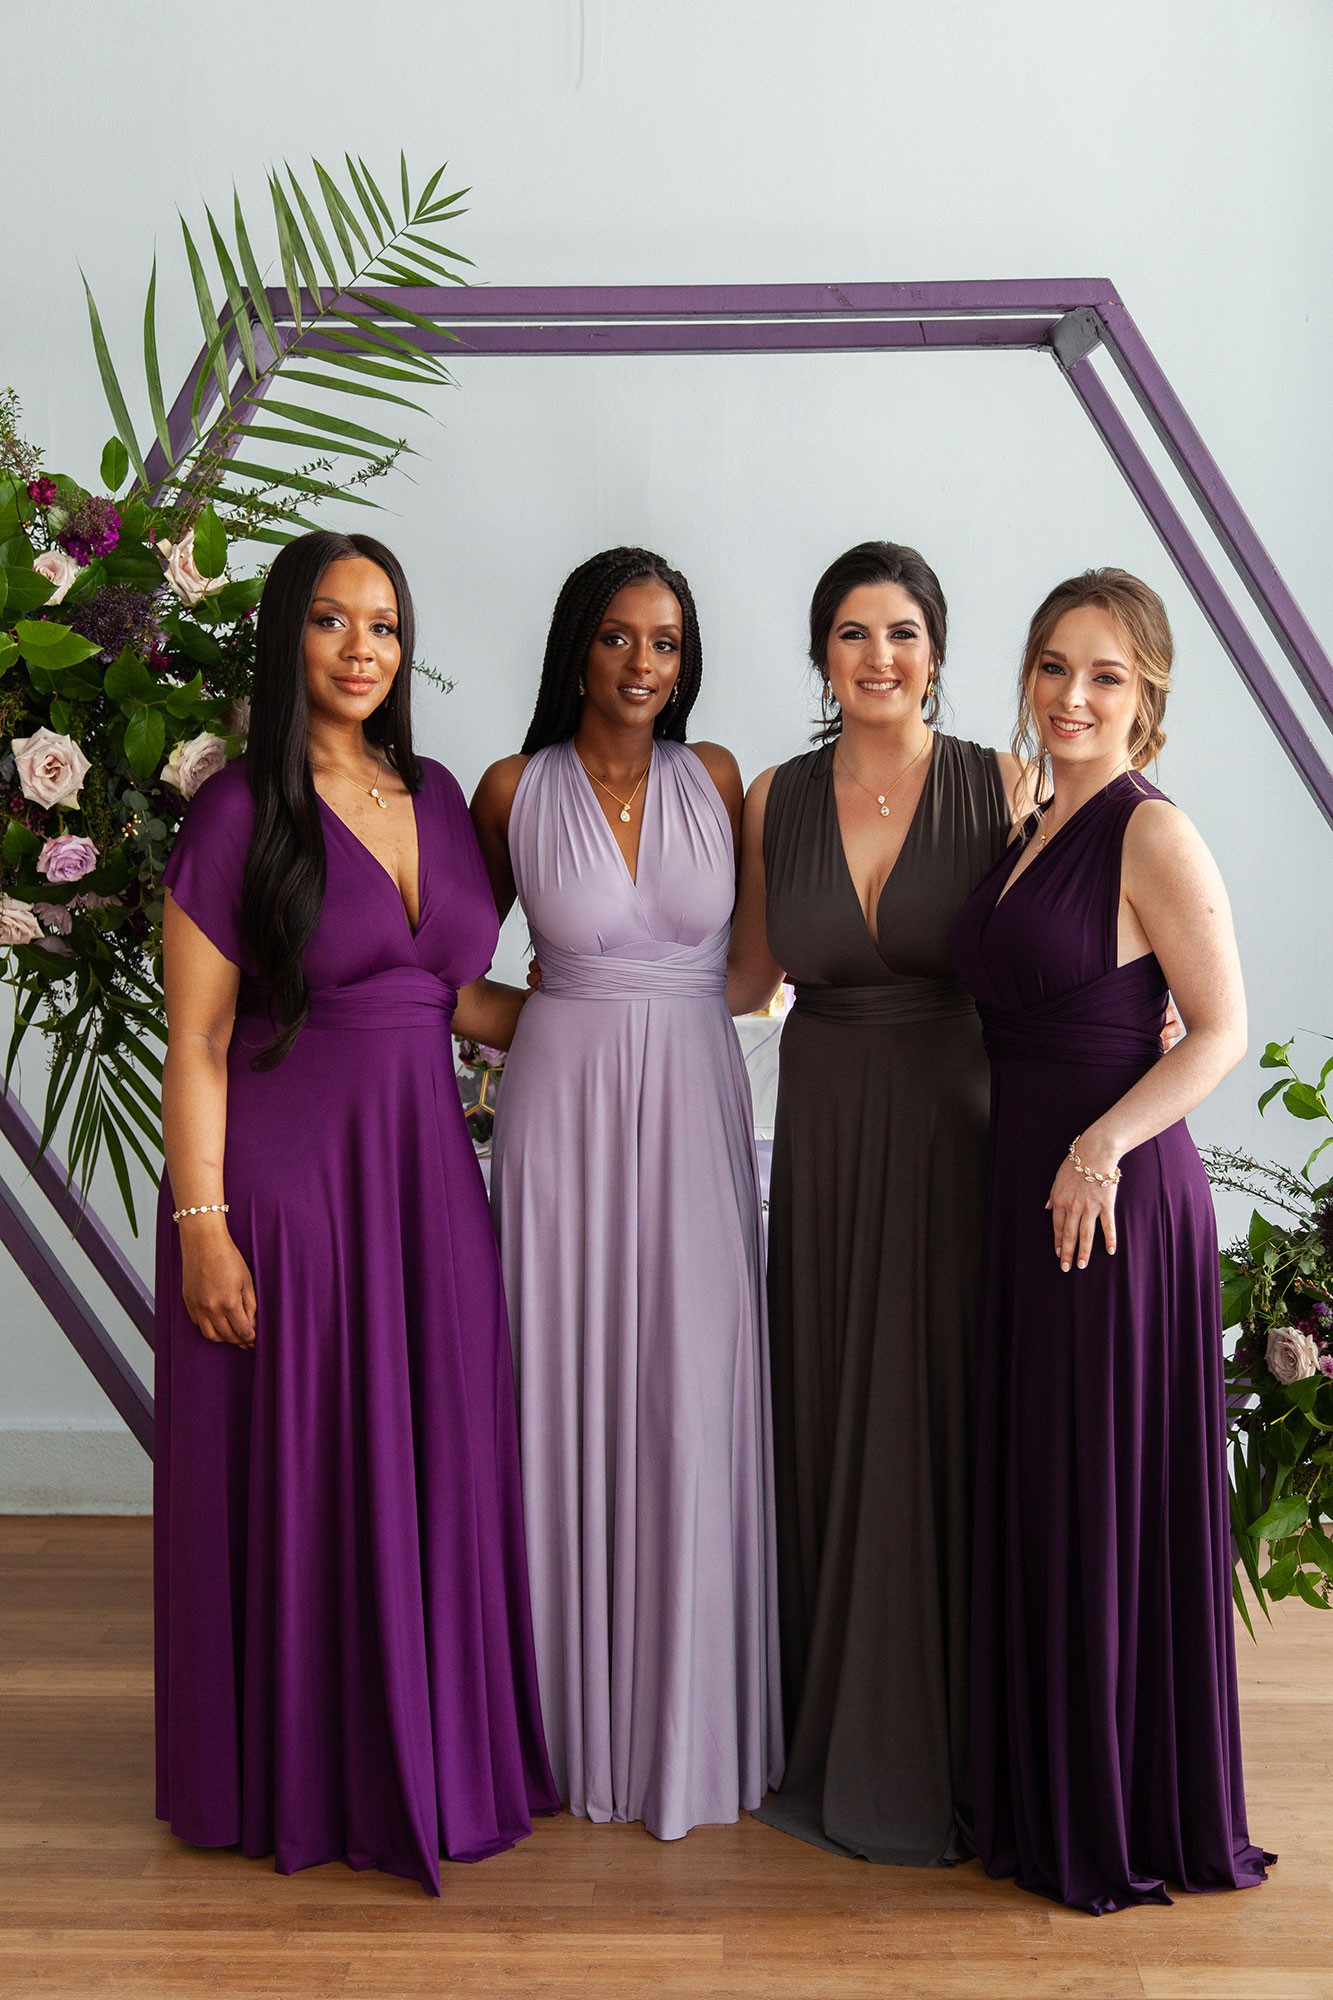 Henkaa fall wedding party dresses in purple and gray tones